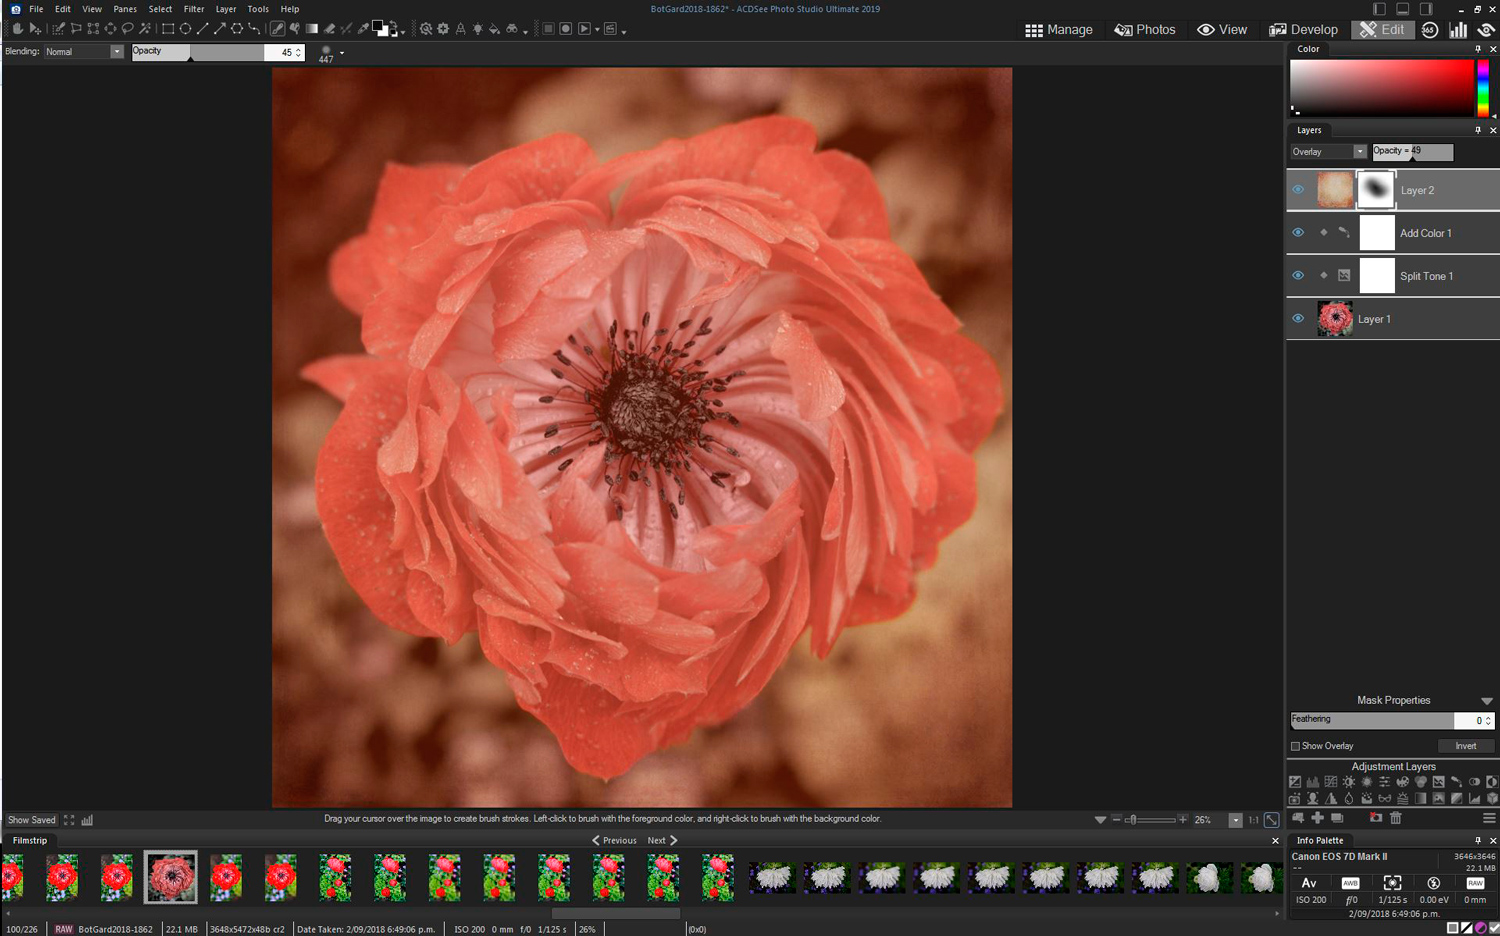 16 - ACDSee Photo Studio Ultimate 2019 Review